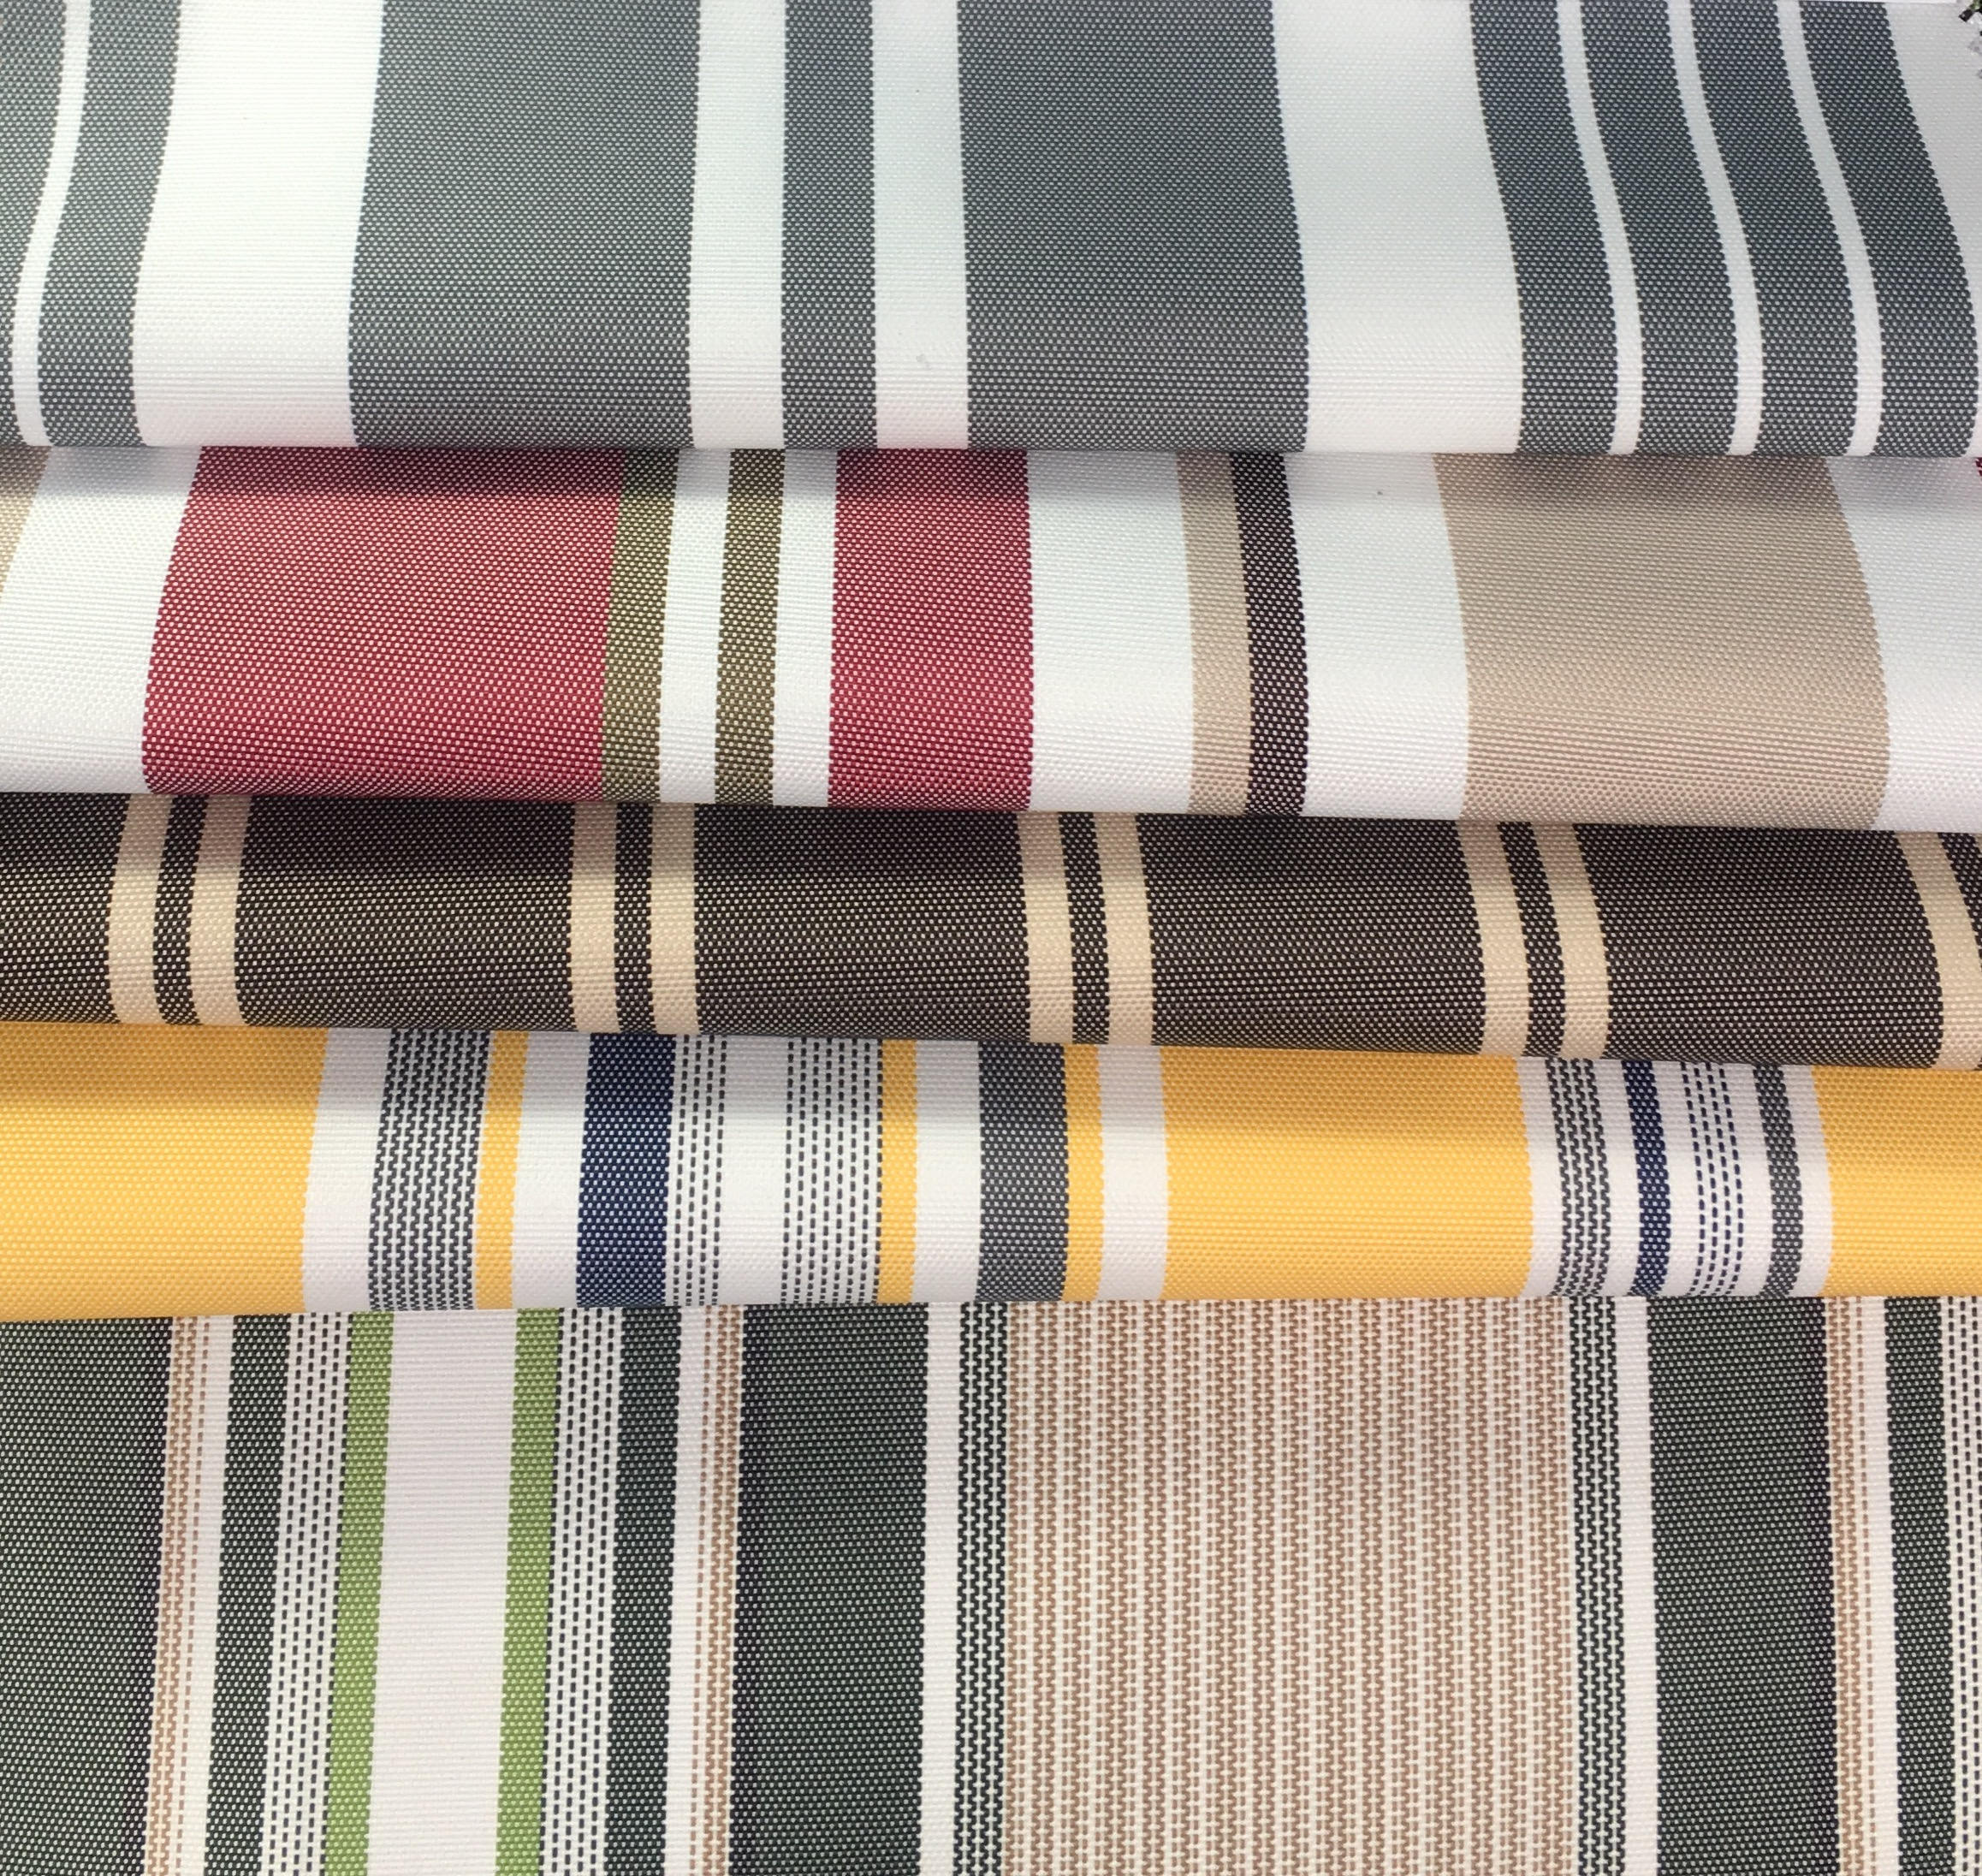 "Brown Thin Stripe 600 Denier Waterproof UV Protection Nylon Canvas 60"" Wide 